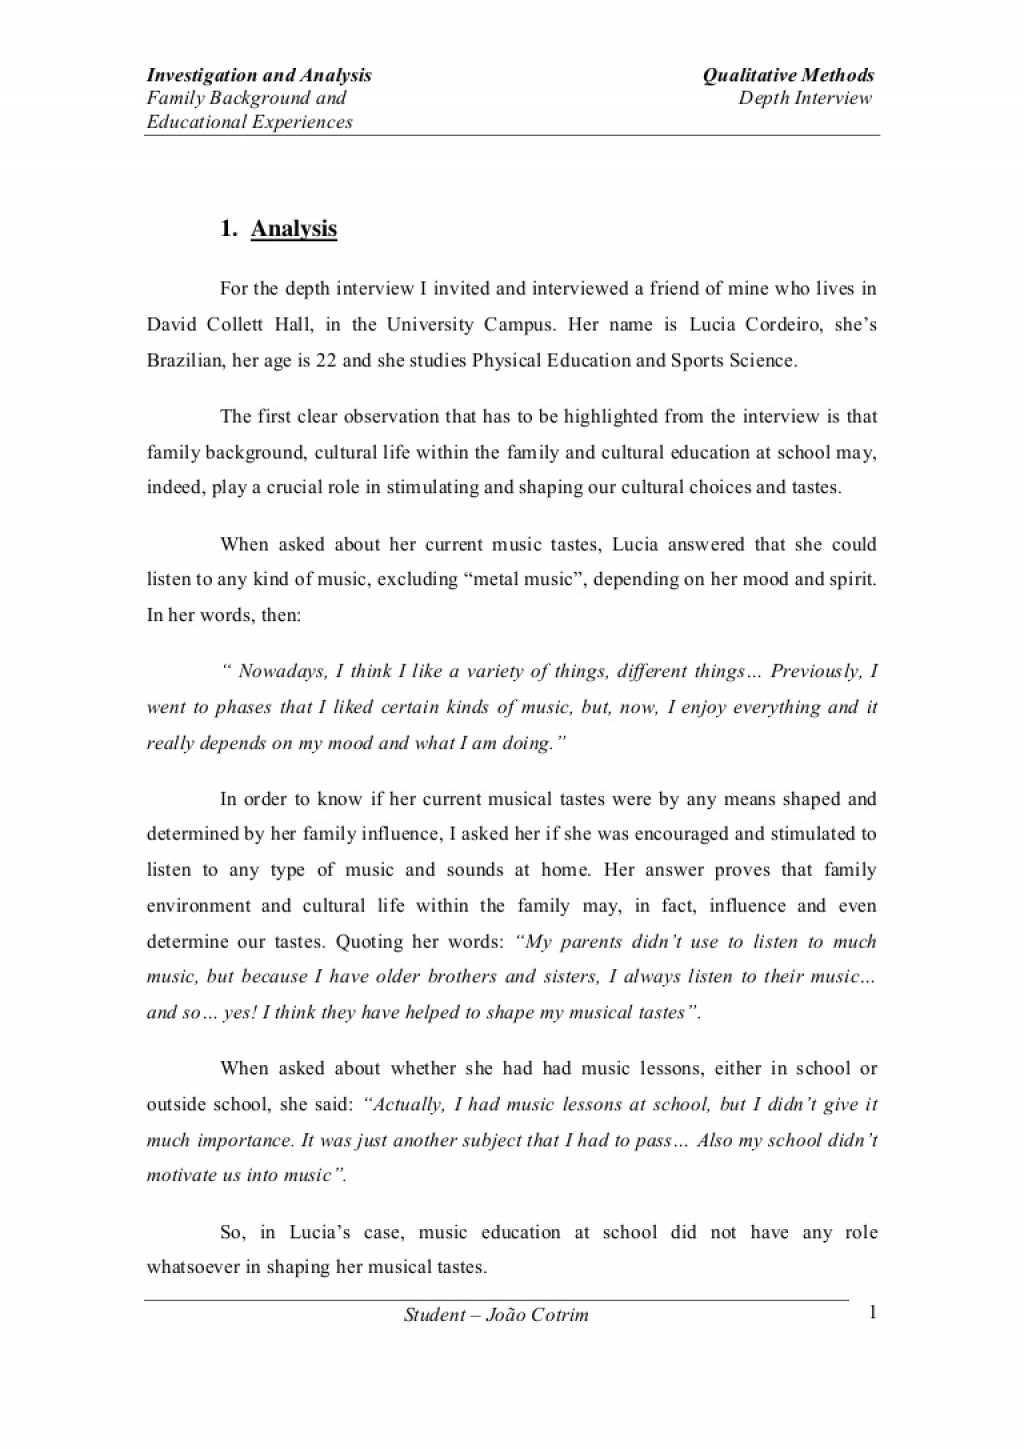 010 Depthinterview Phpapp01 Thumbnail Essay Example Striking Profile Examples On An Event Writing A Person Large